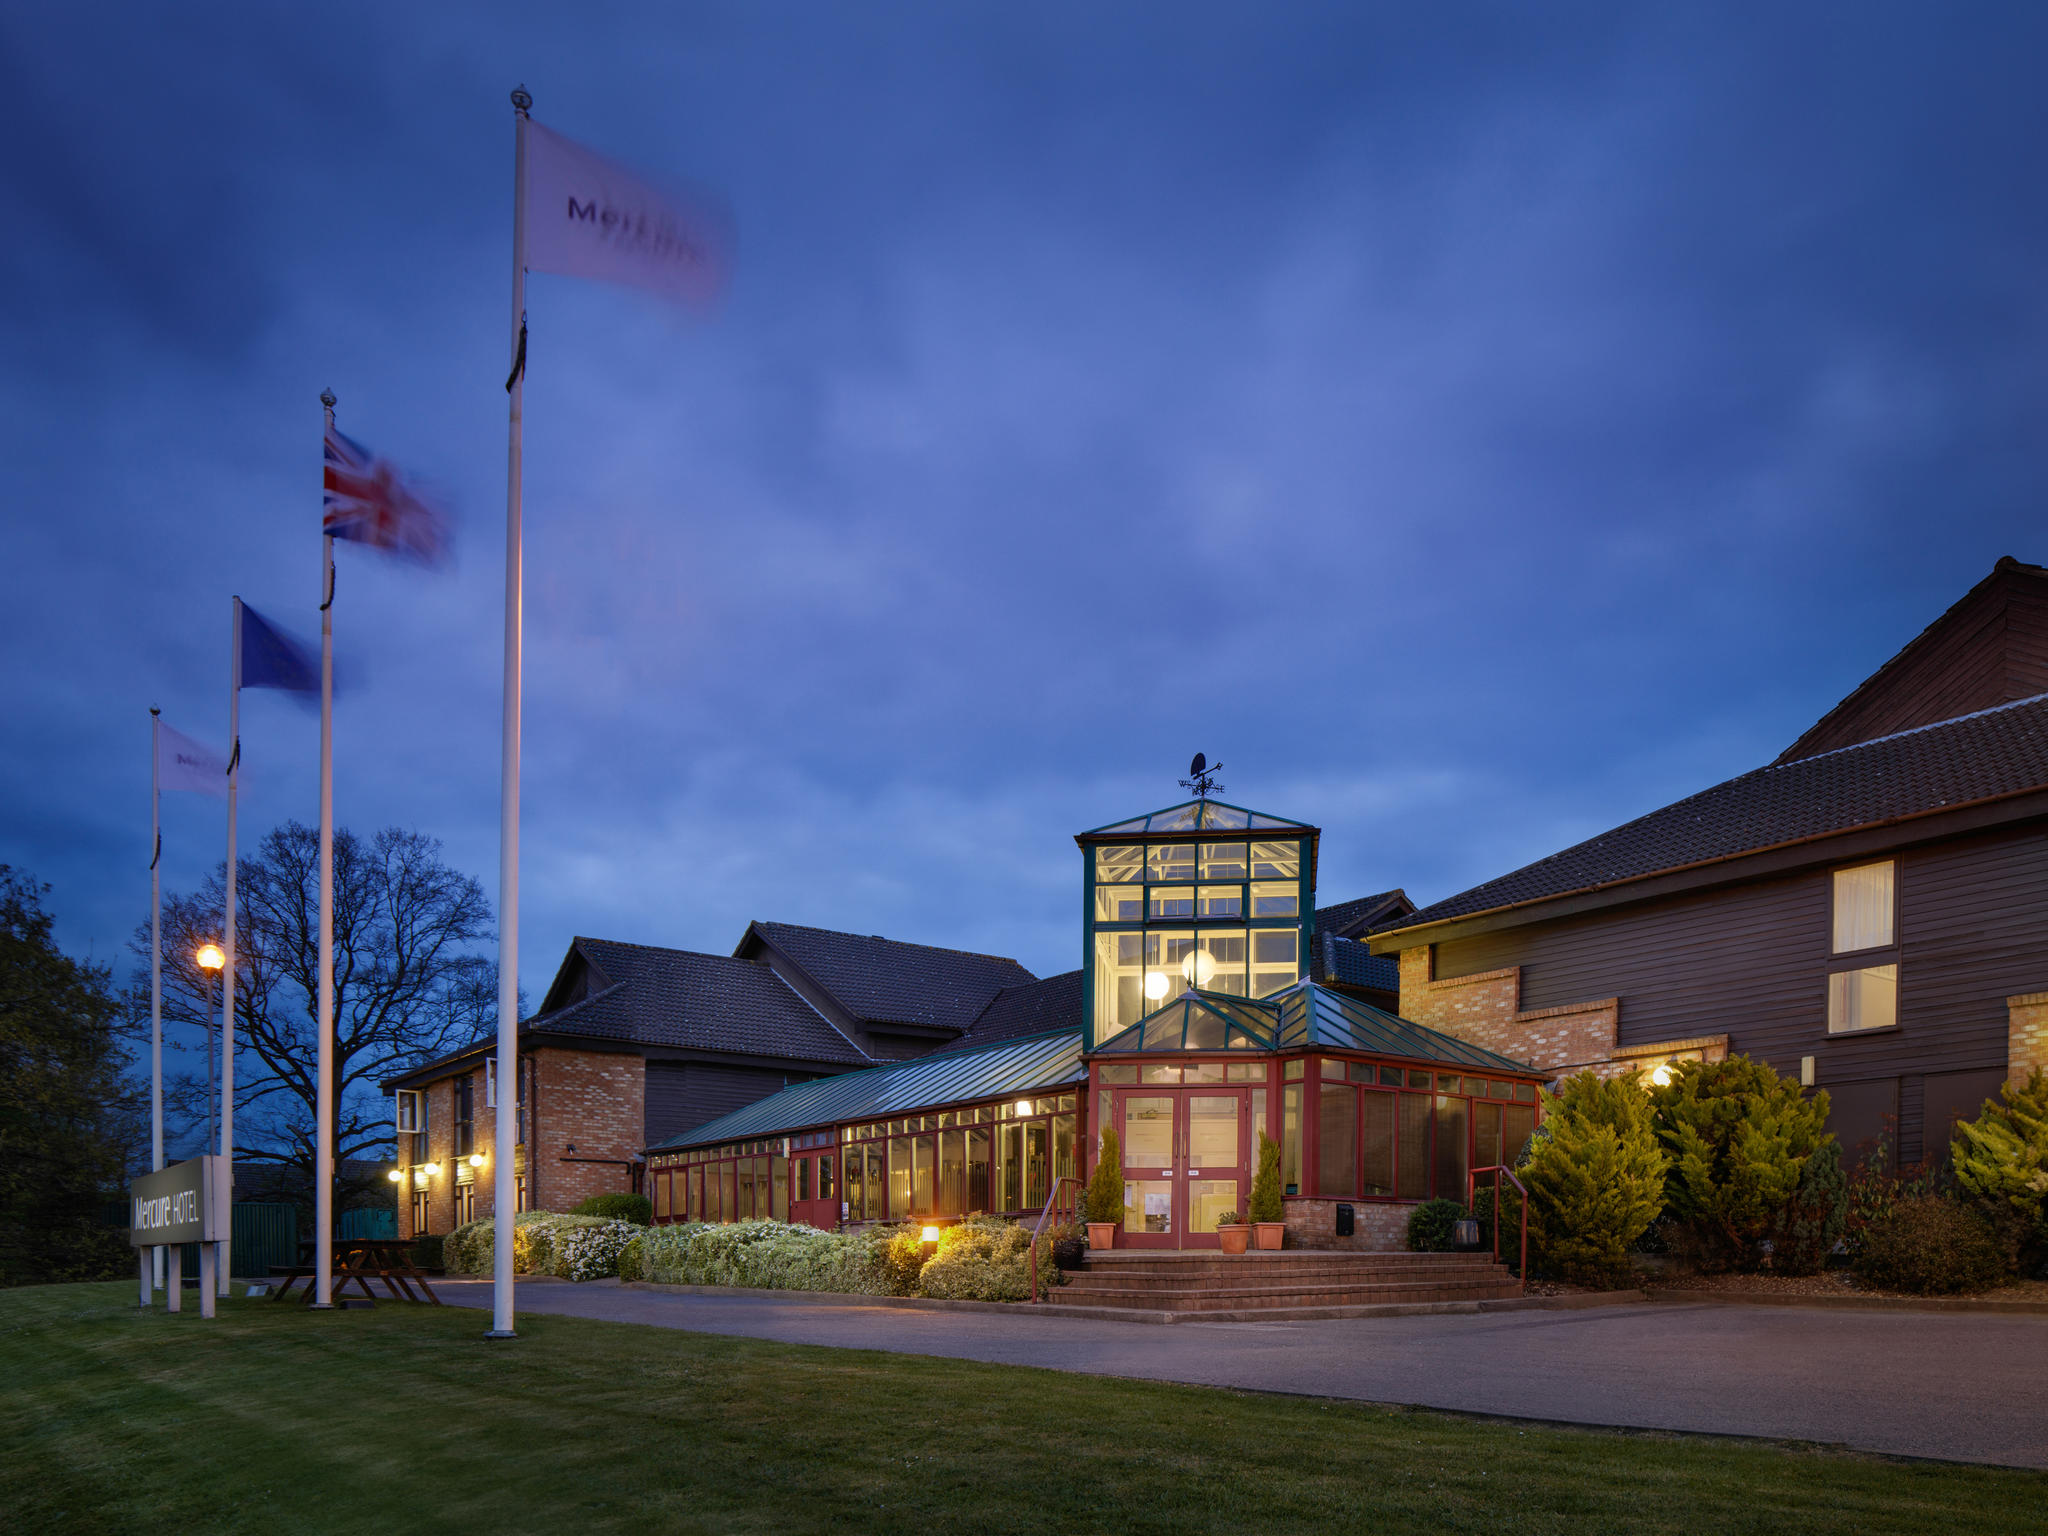 Otel – Mercure Hatfield Oak Hotel